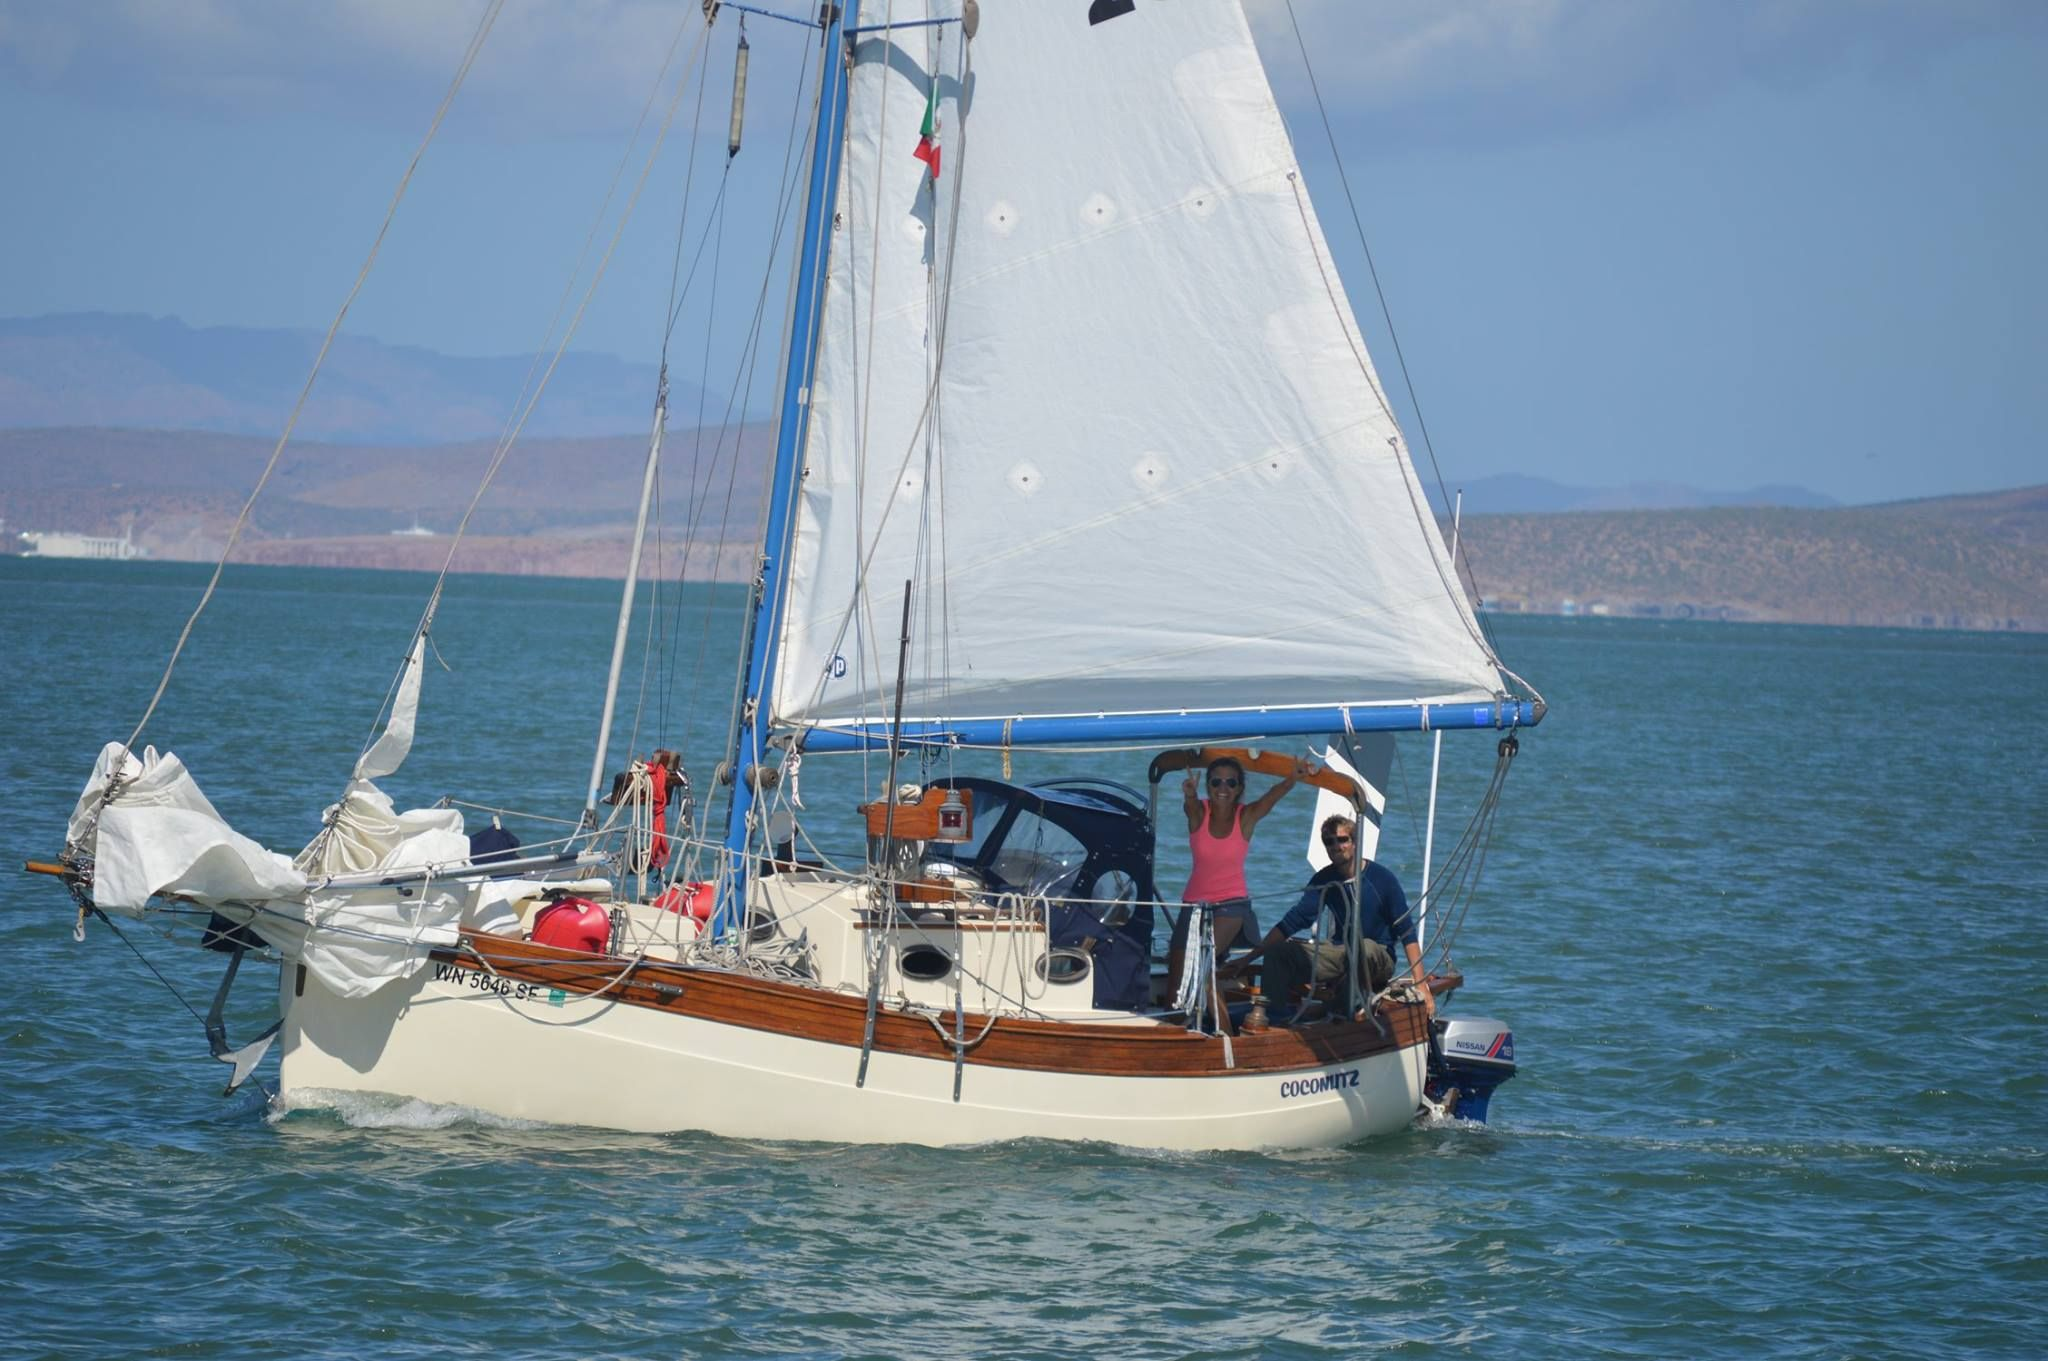 Pin by Joe Willock on Wooden Boat in 2019 | Sailing ships